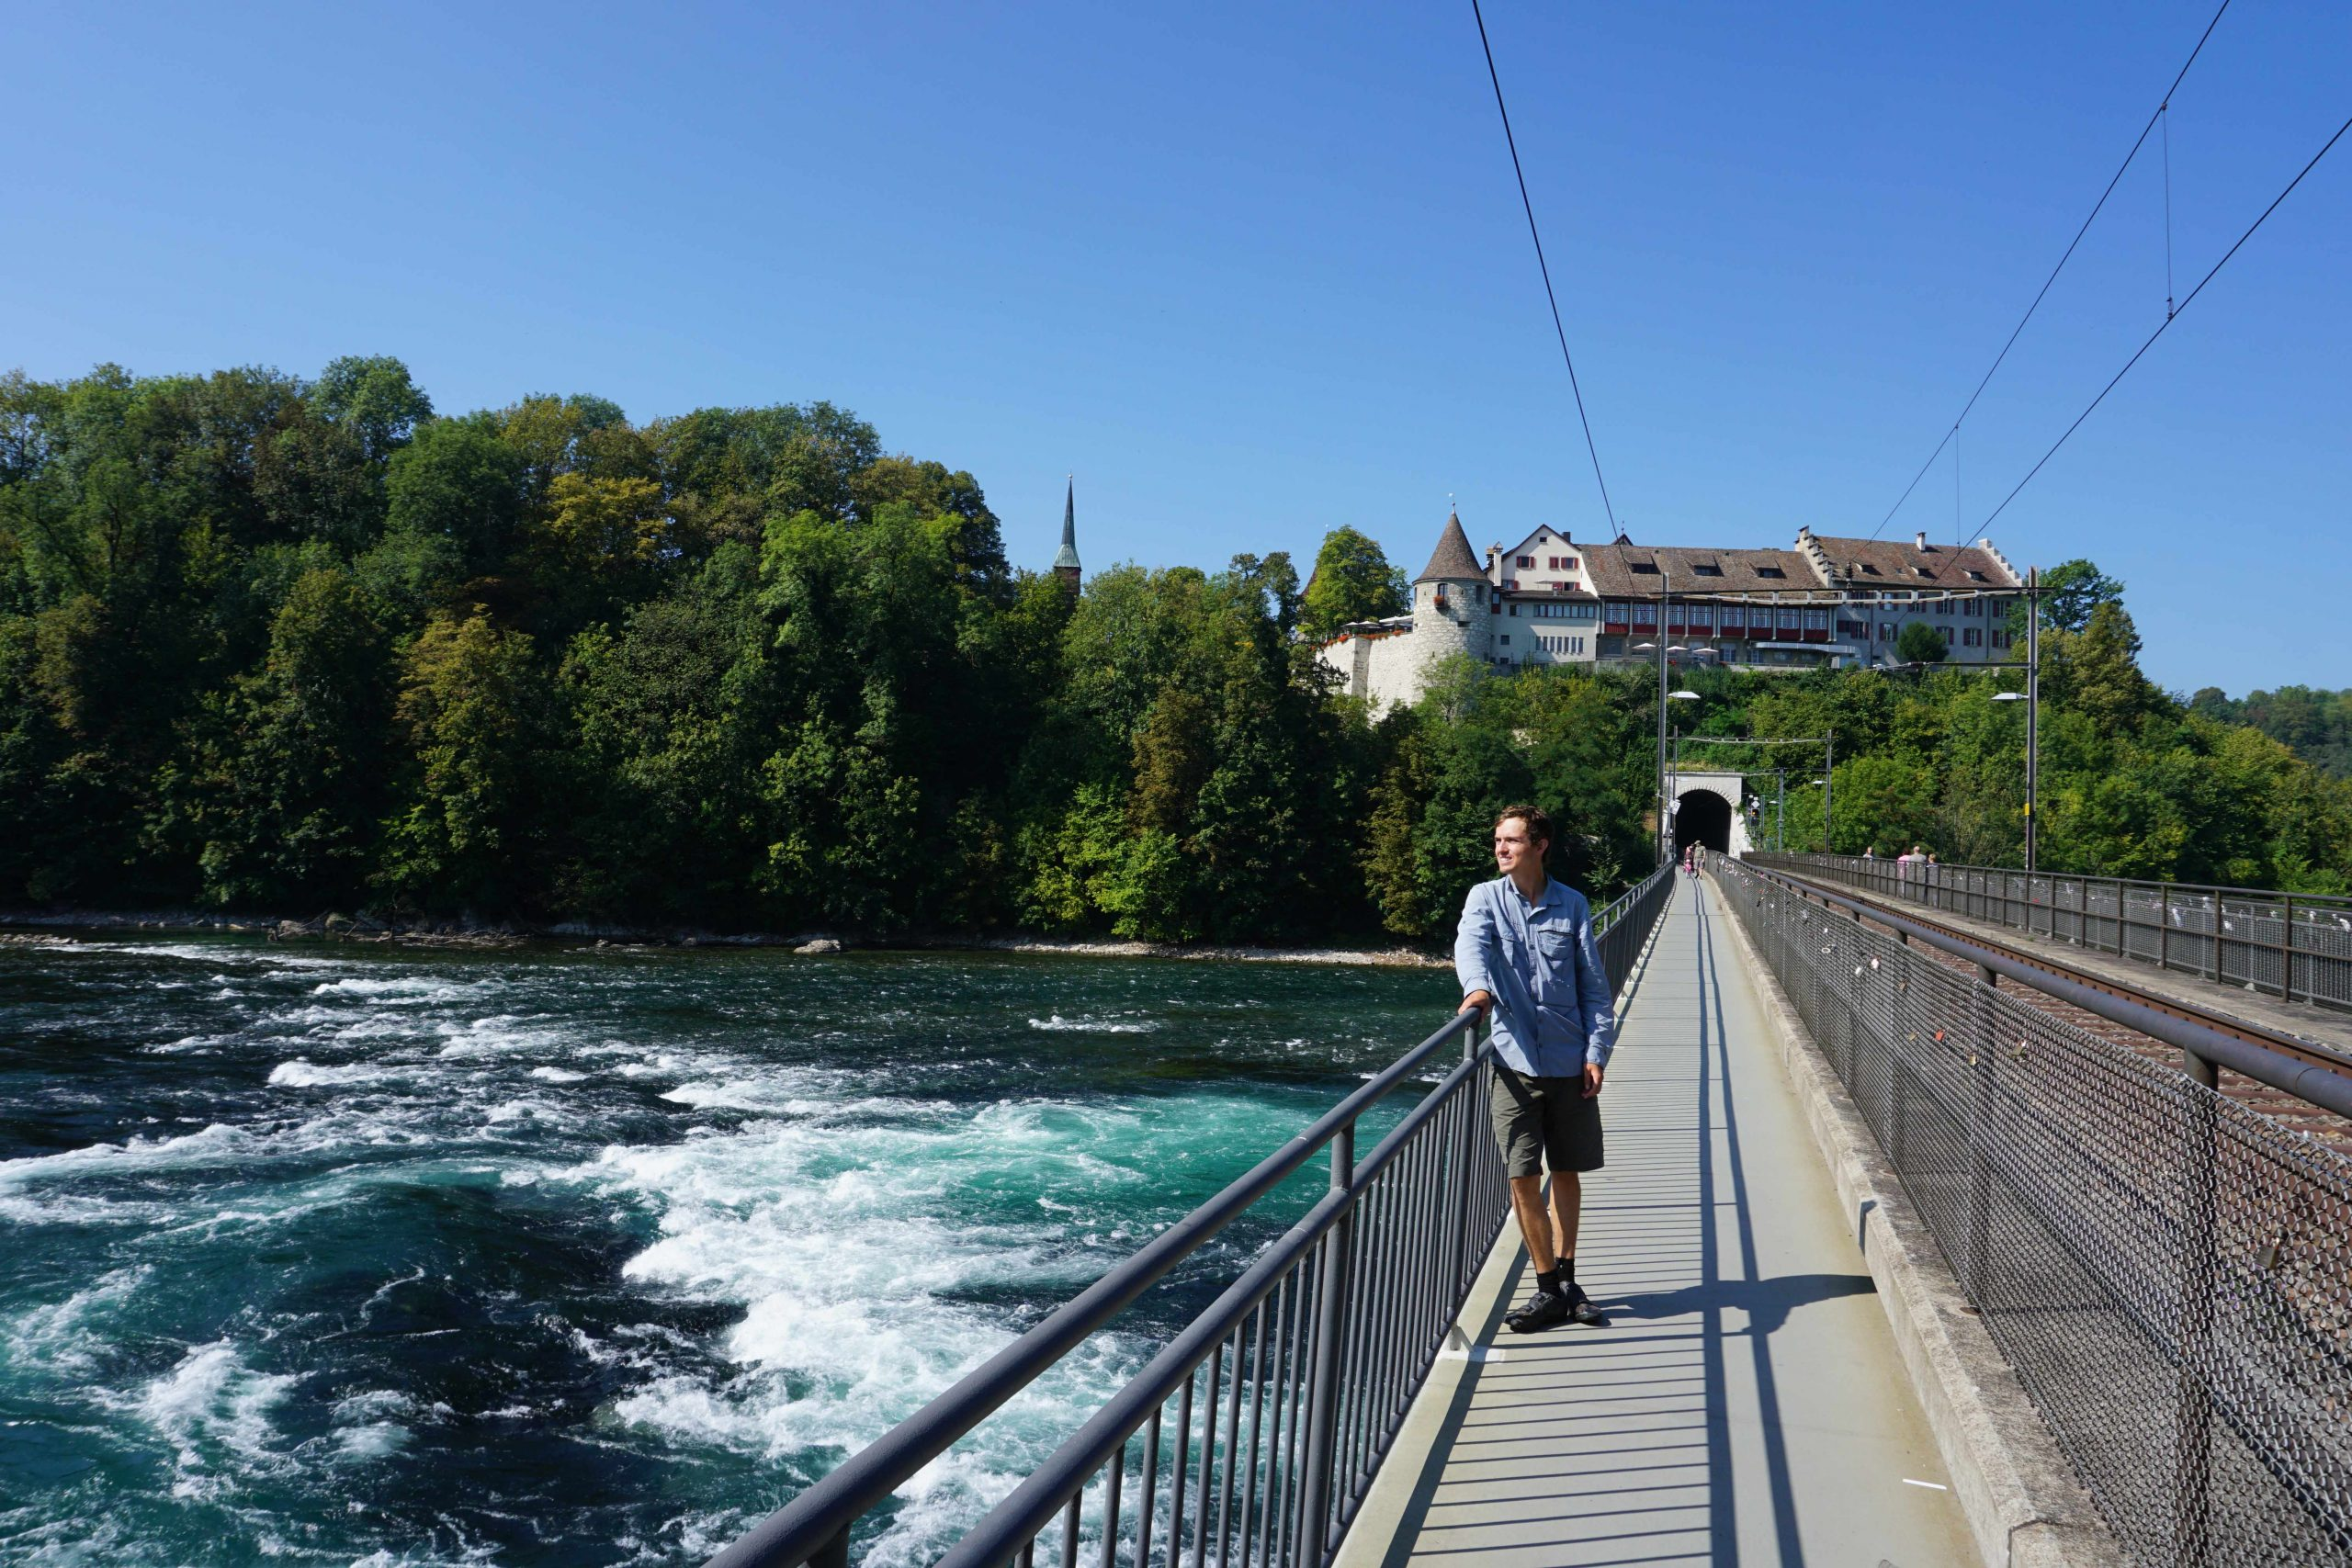 Rheinfall, and cycle touring through Switzerland